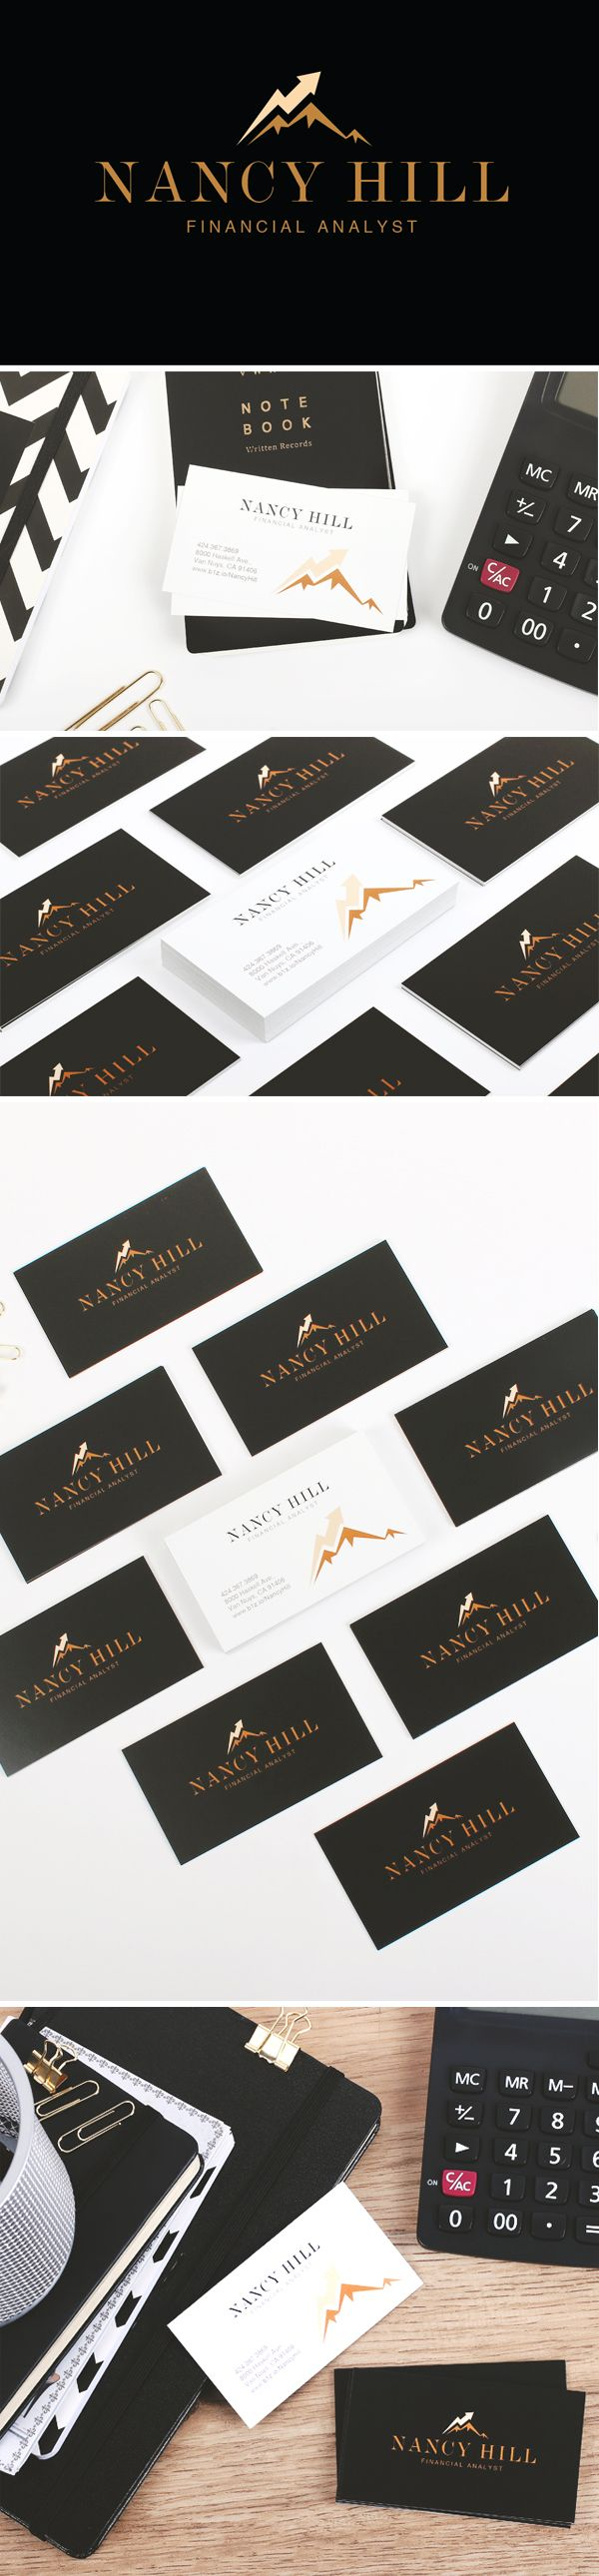 233 best Business Card Designs images on Pinterest | Business card ...